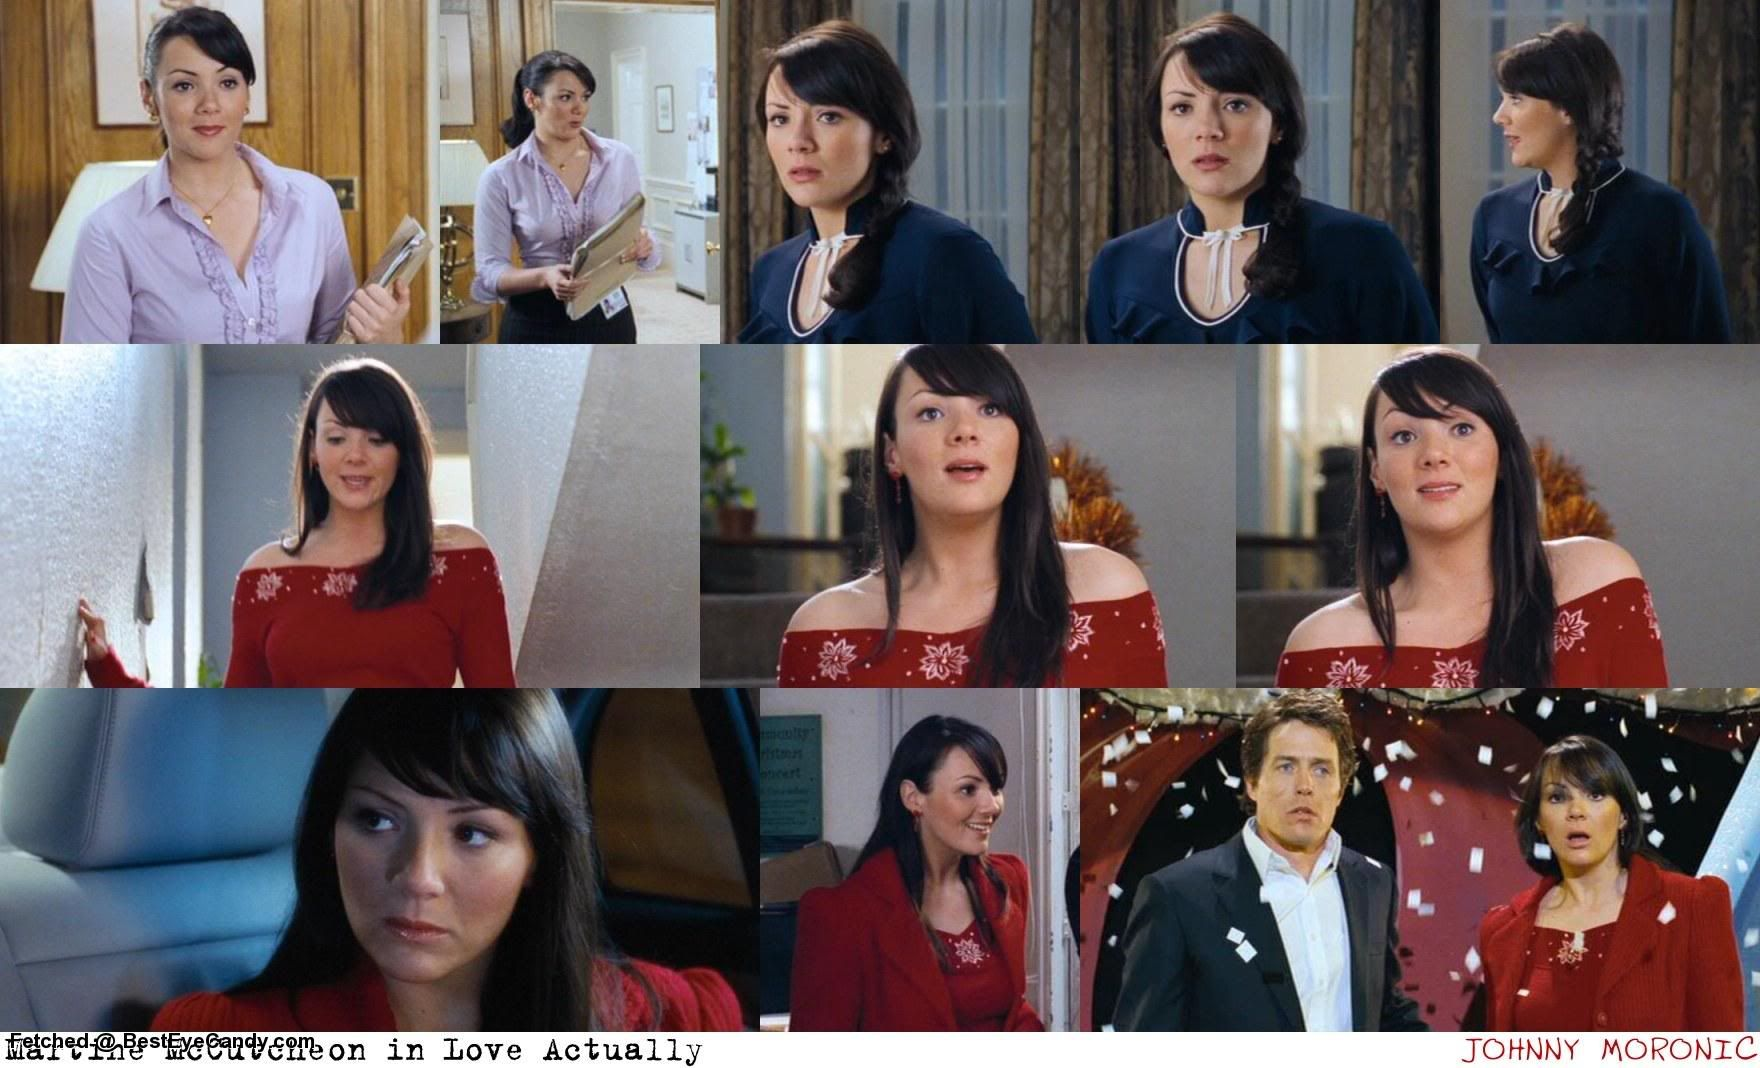 Martine Mccutcheon As Natalie In Love Actually Love Actually Love Actually 2003 Red Sweaters